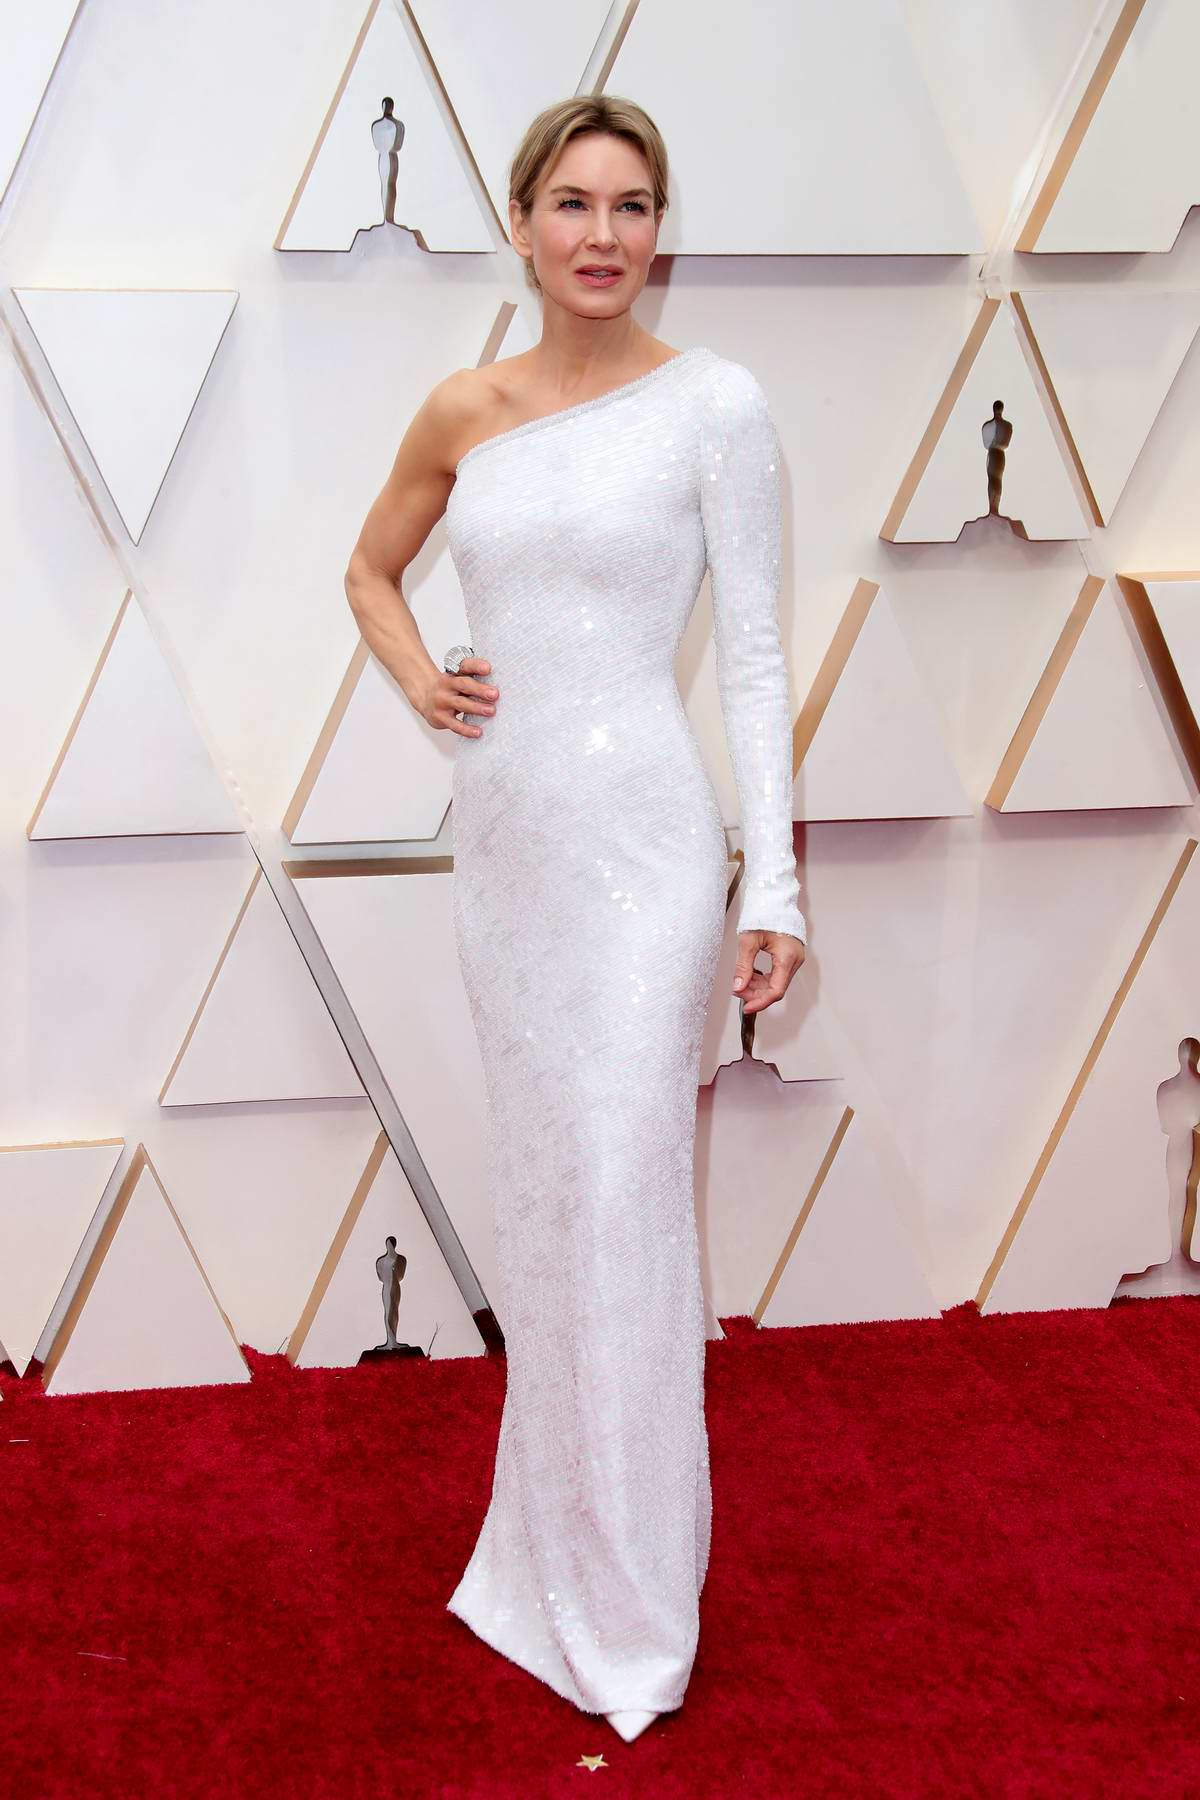 Renee Zellweger attends the 92nd Annual Academy Awards at Dolby Theatre in Los Angeles